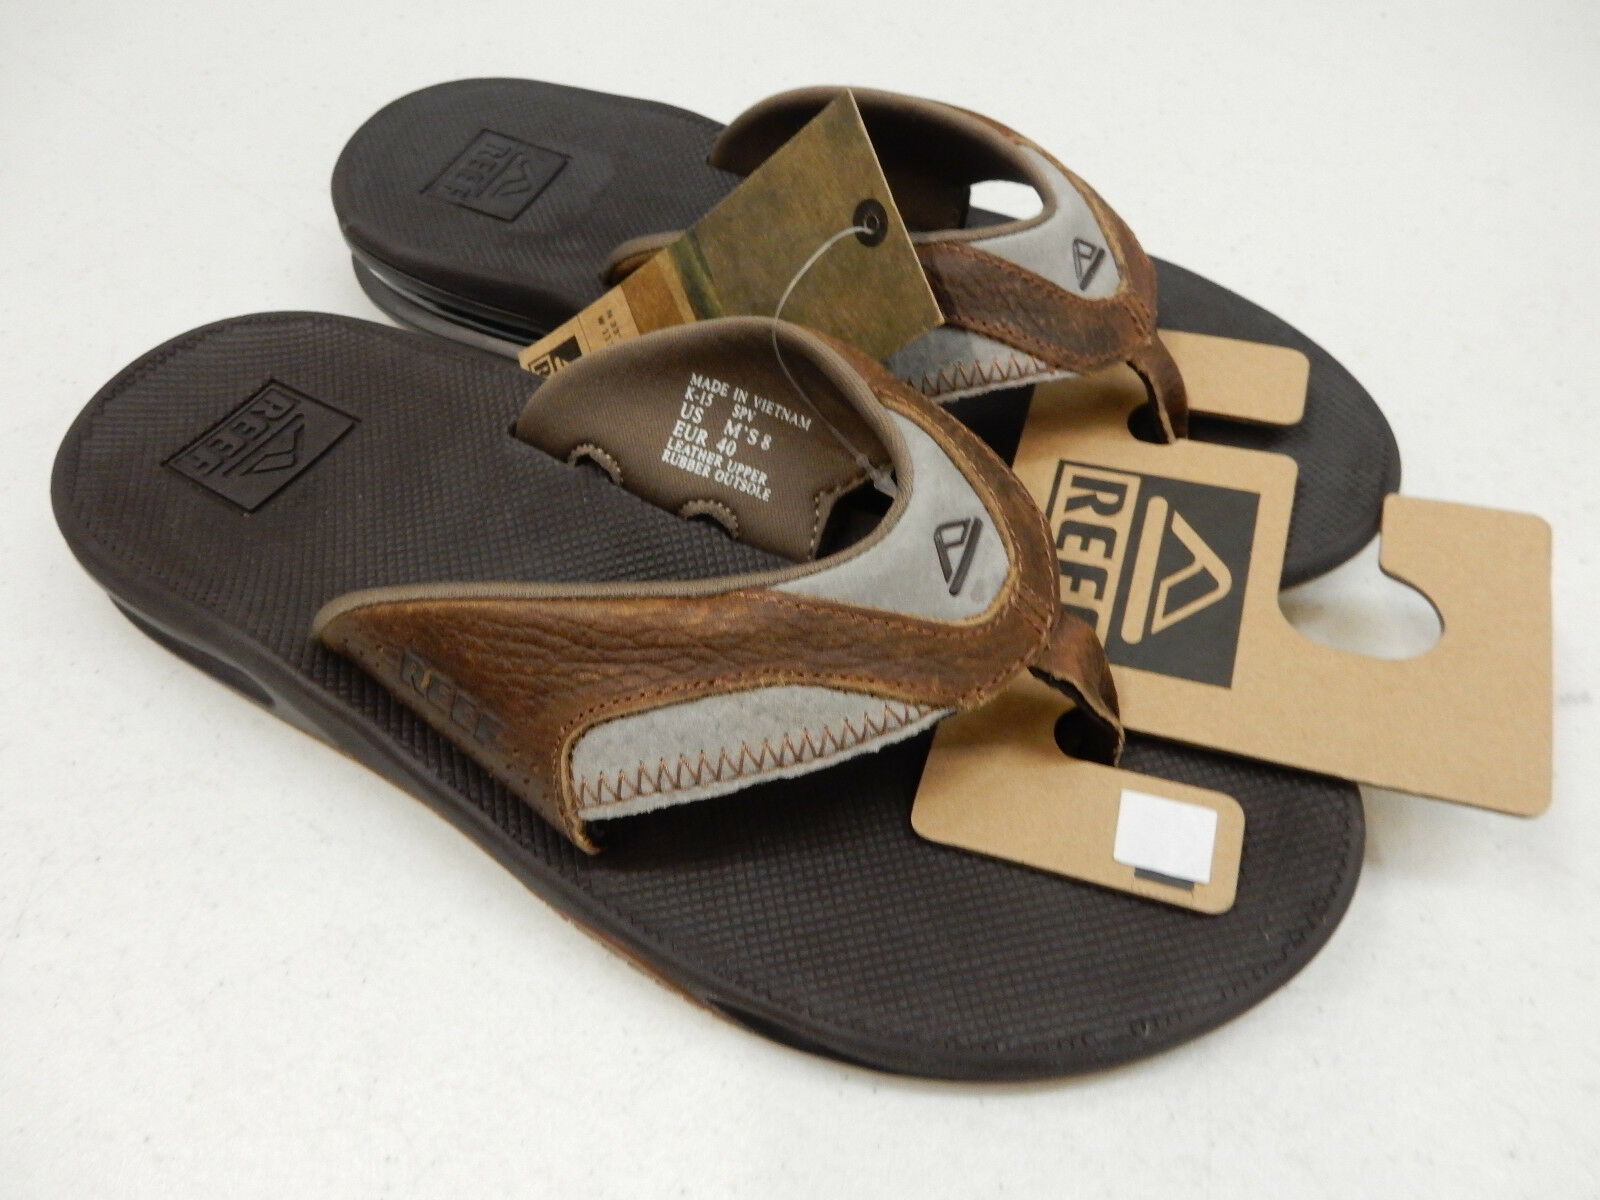 976eb2eec16f REEF MENS SANDALS LEATHER FANNING BROWN BROWN BROWN BROWN SIZE 10 f4faa7